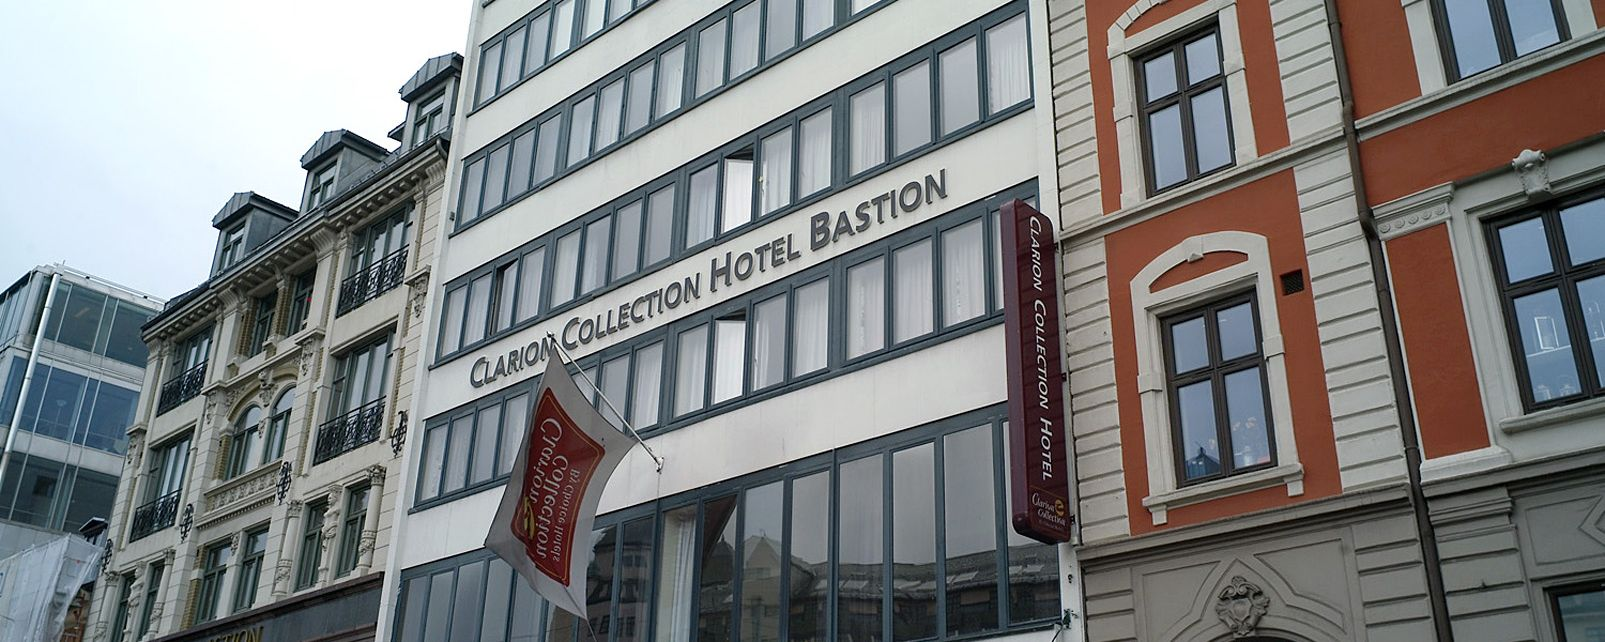 Hotel Clarion Collection Hotel Bastion